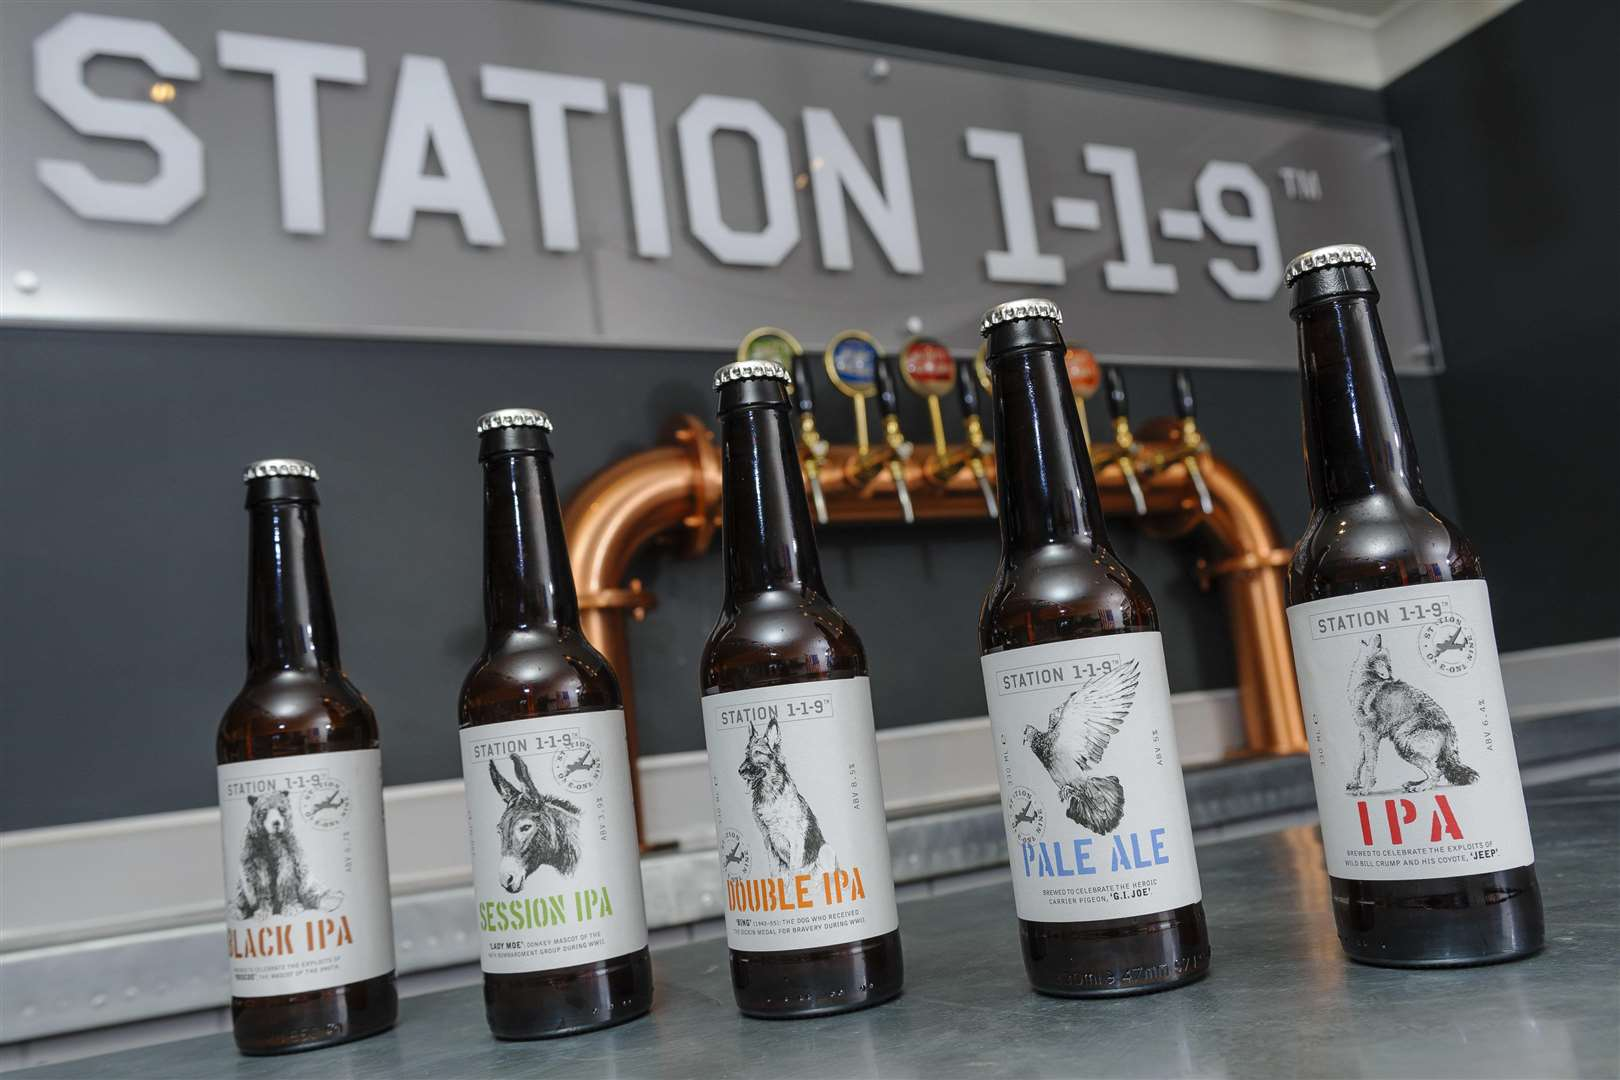 Station 119's bottles have now been redesigned and released for sale.